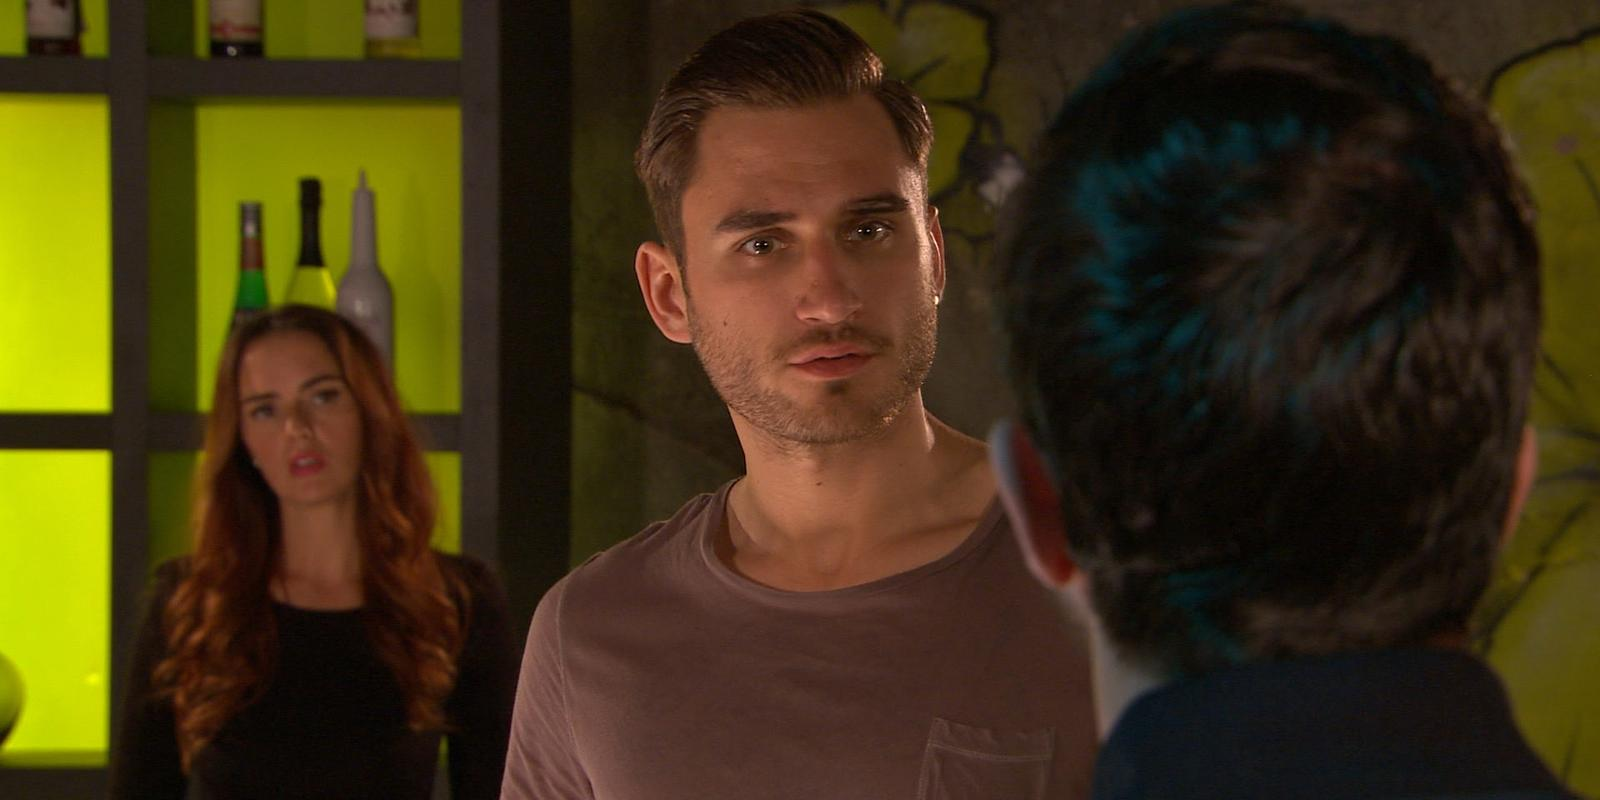 grace and freddie hollyoaks dating in real life